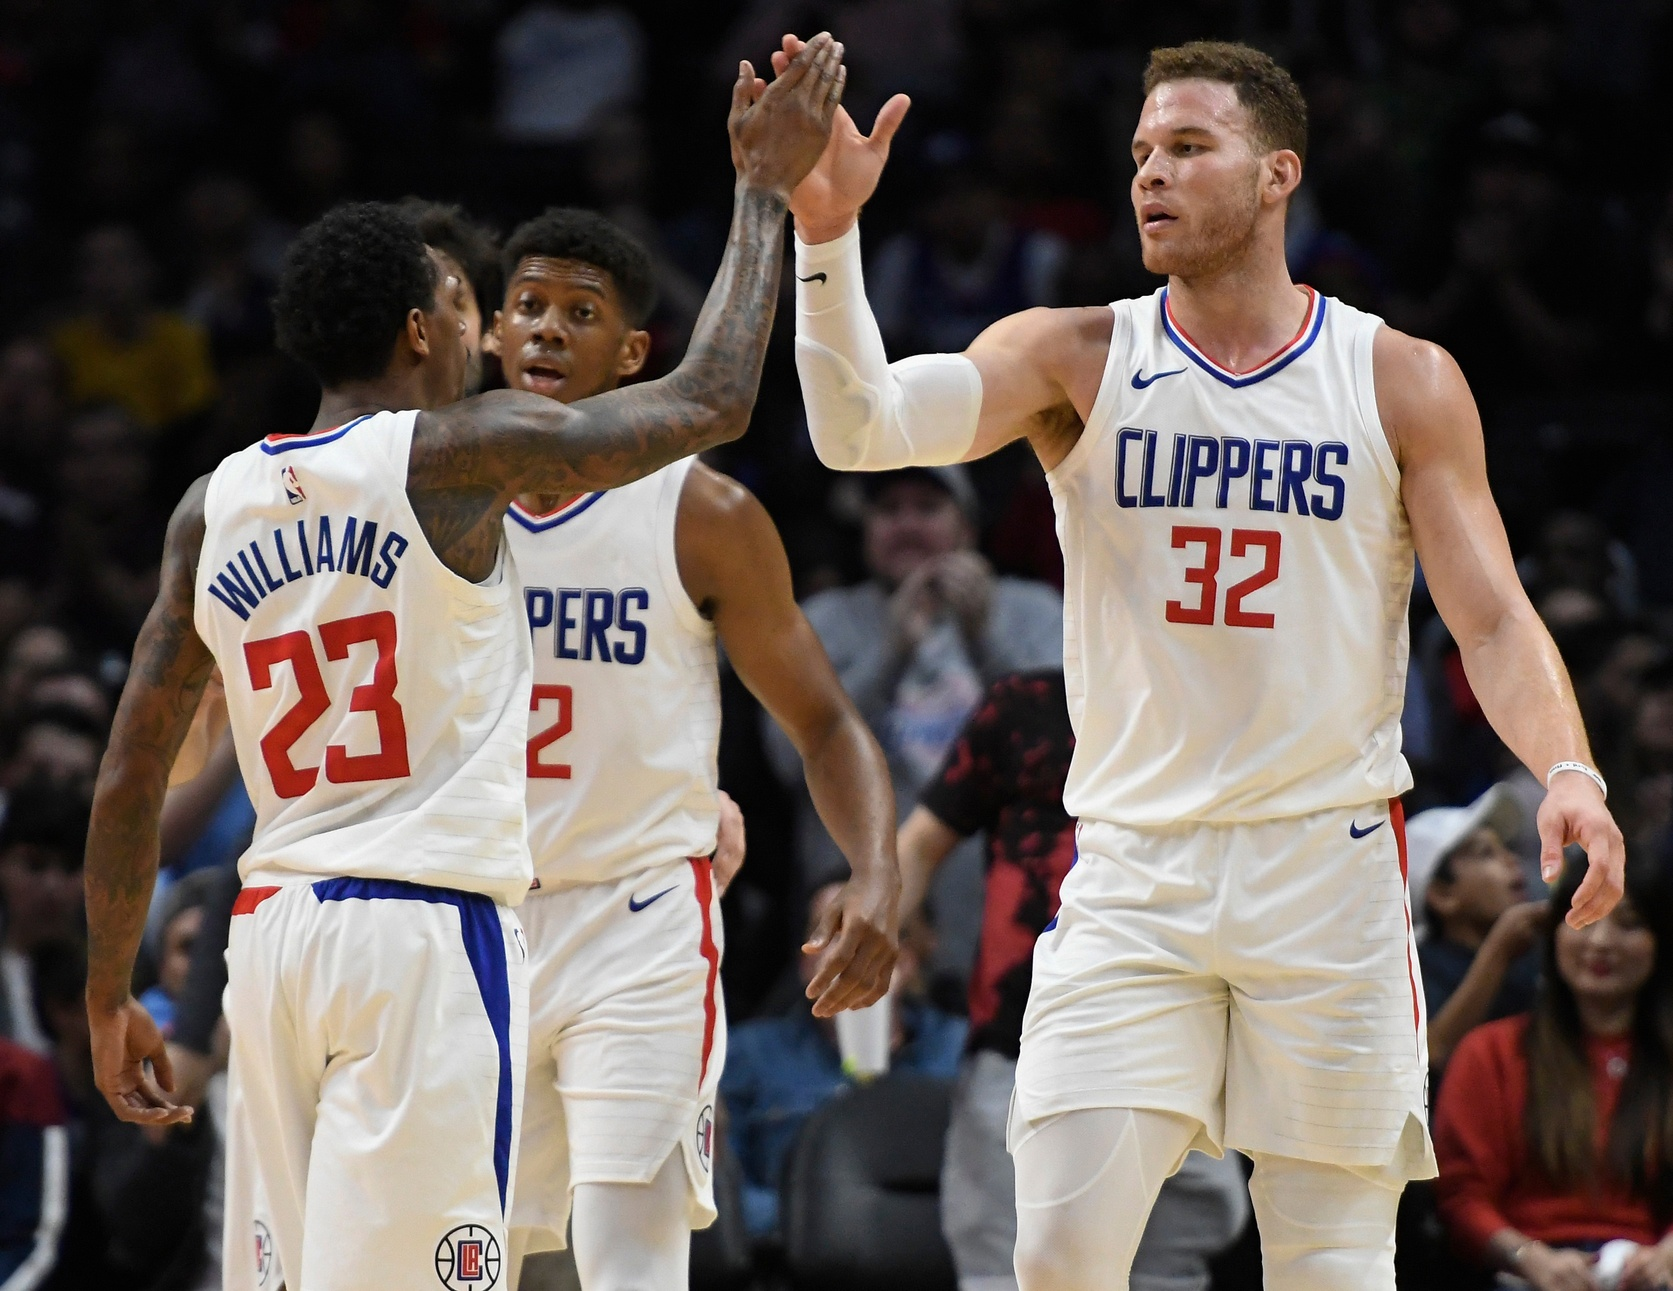 Clippers and Nuggets Battle For Pivotal Playoff Positioning